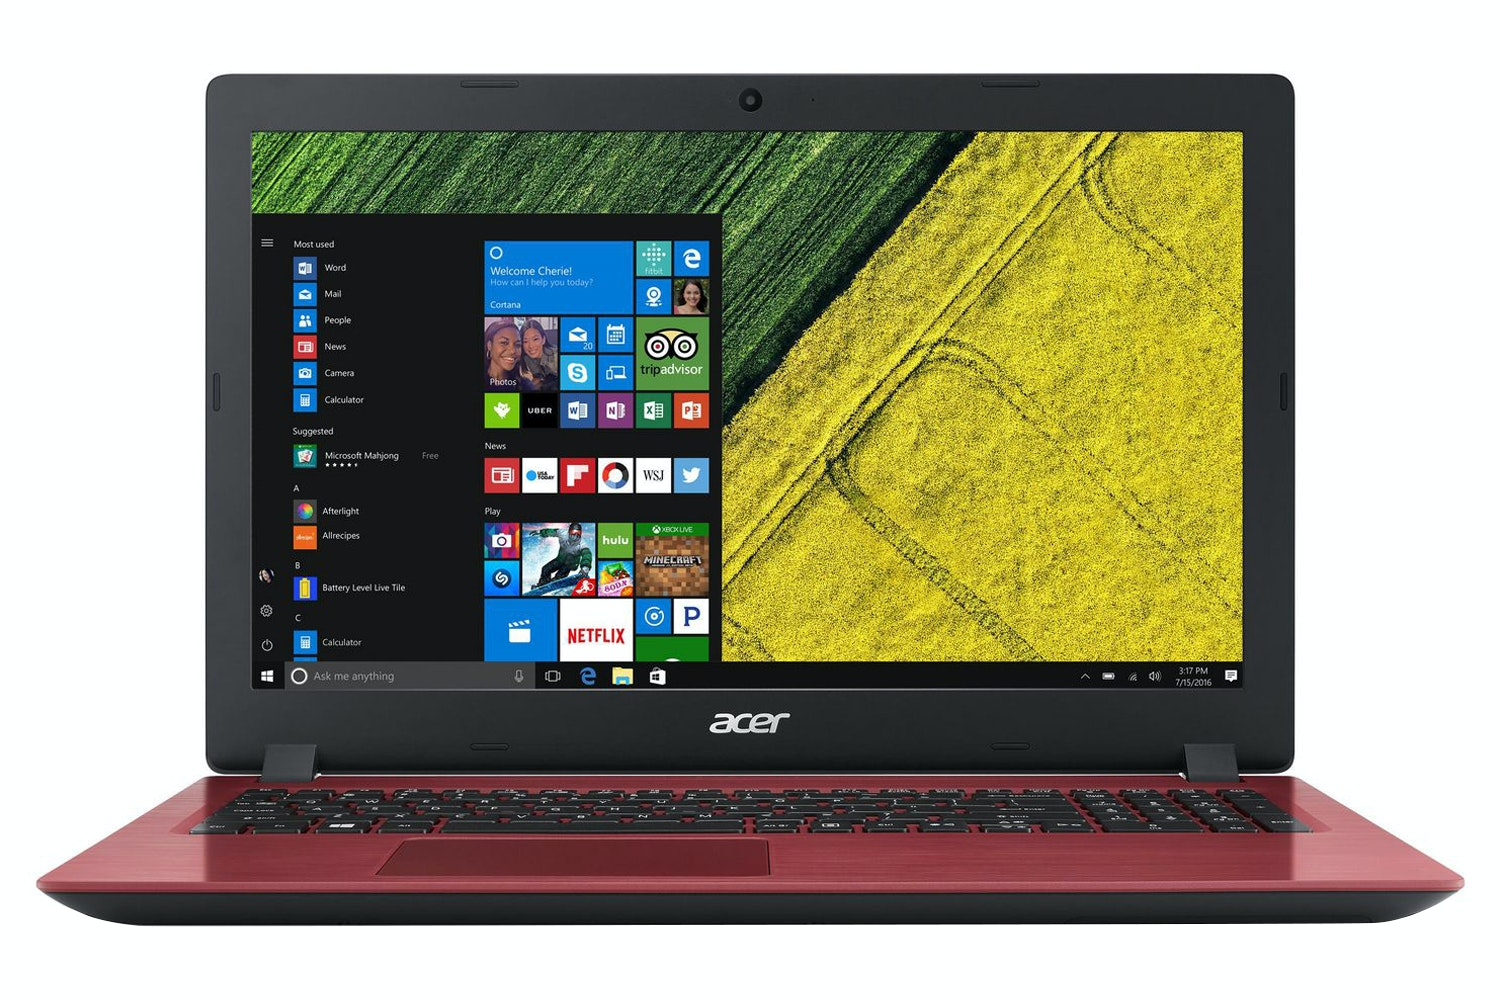 ACER 79G DRIVERS WINDOWS 7